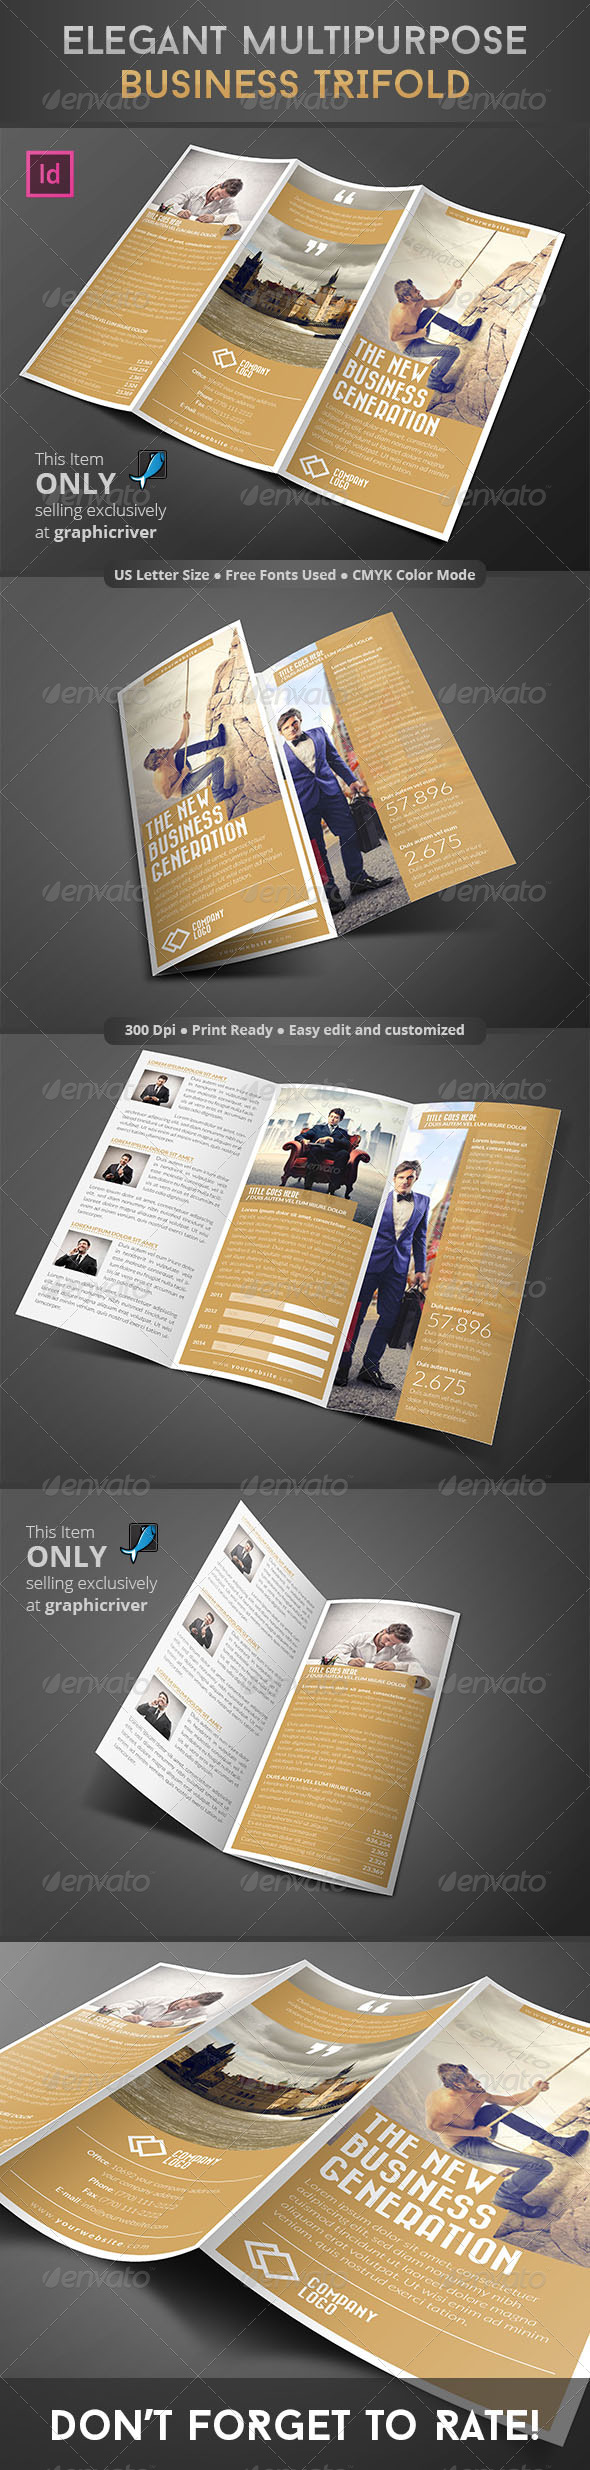 GraphicRiver Elegant Multipurpose Business Trifold 8584143